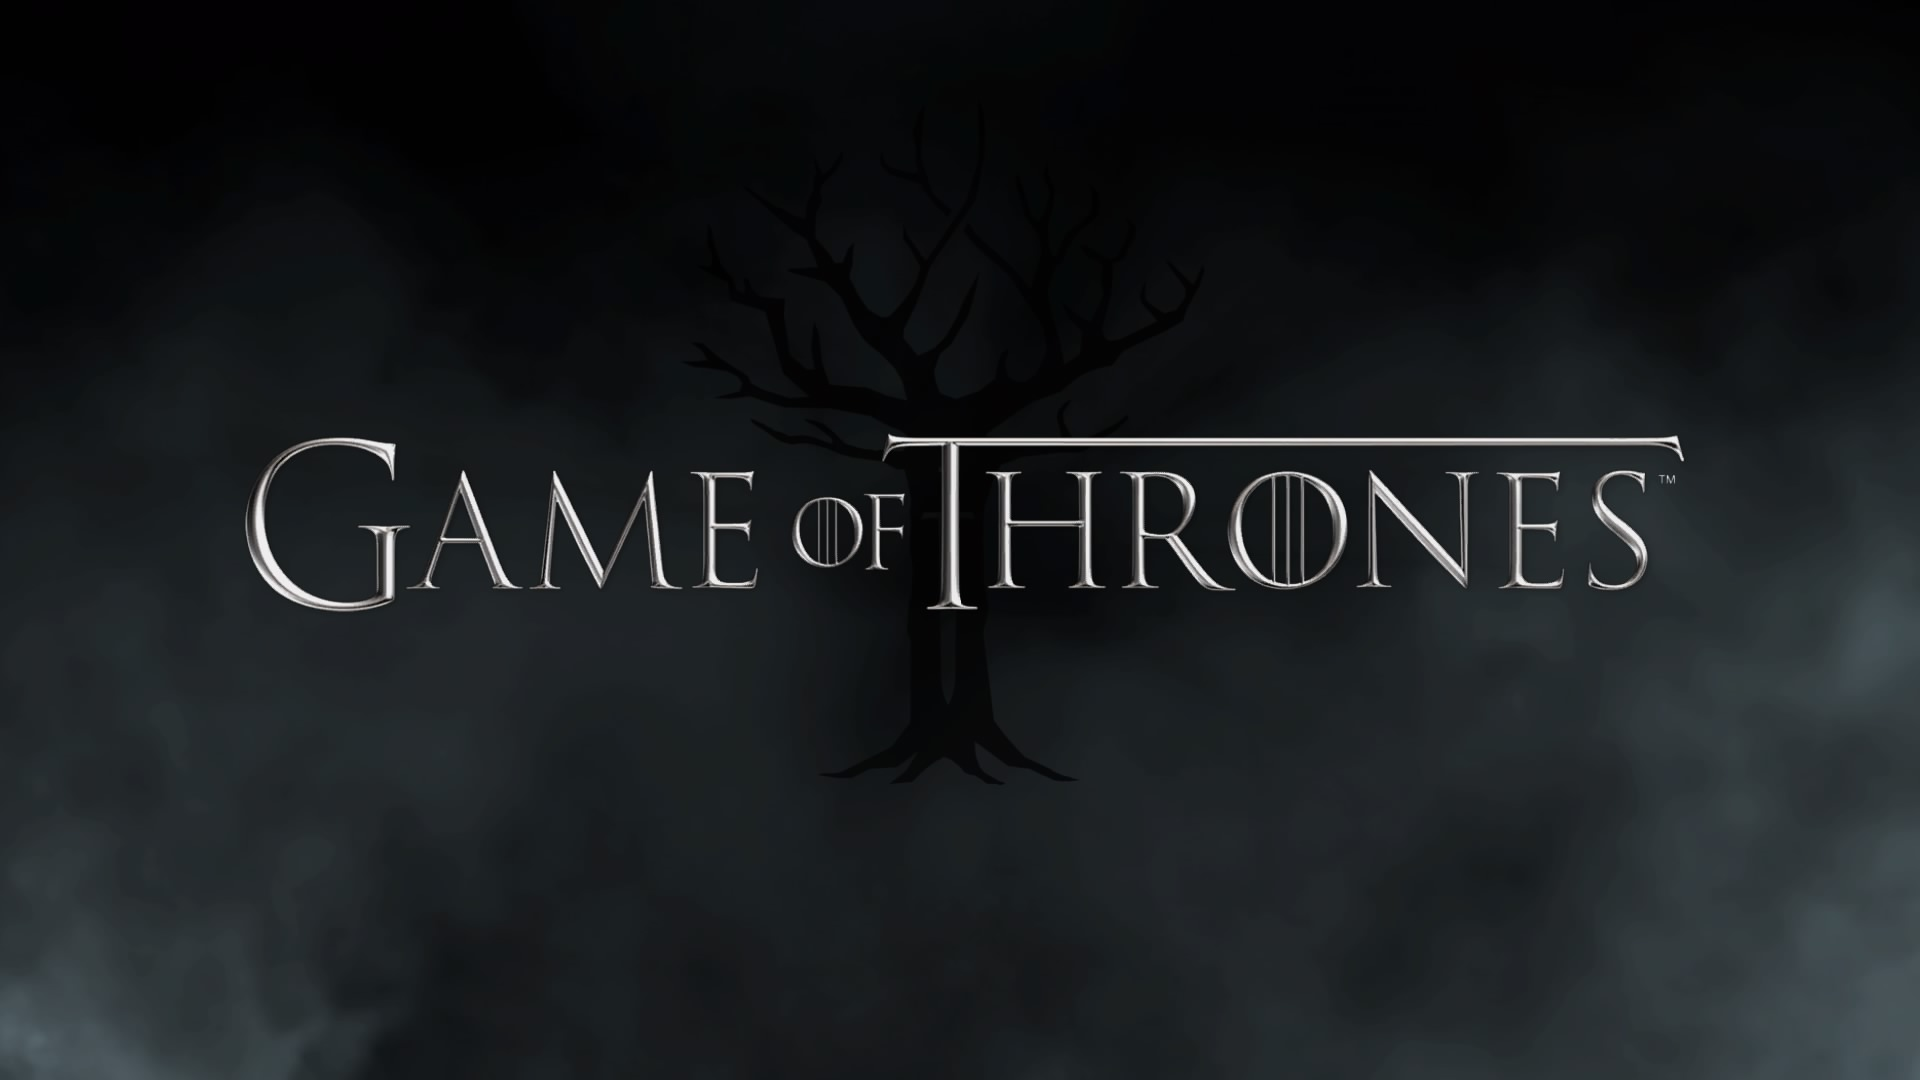 Game of Thrones_20170709185116